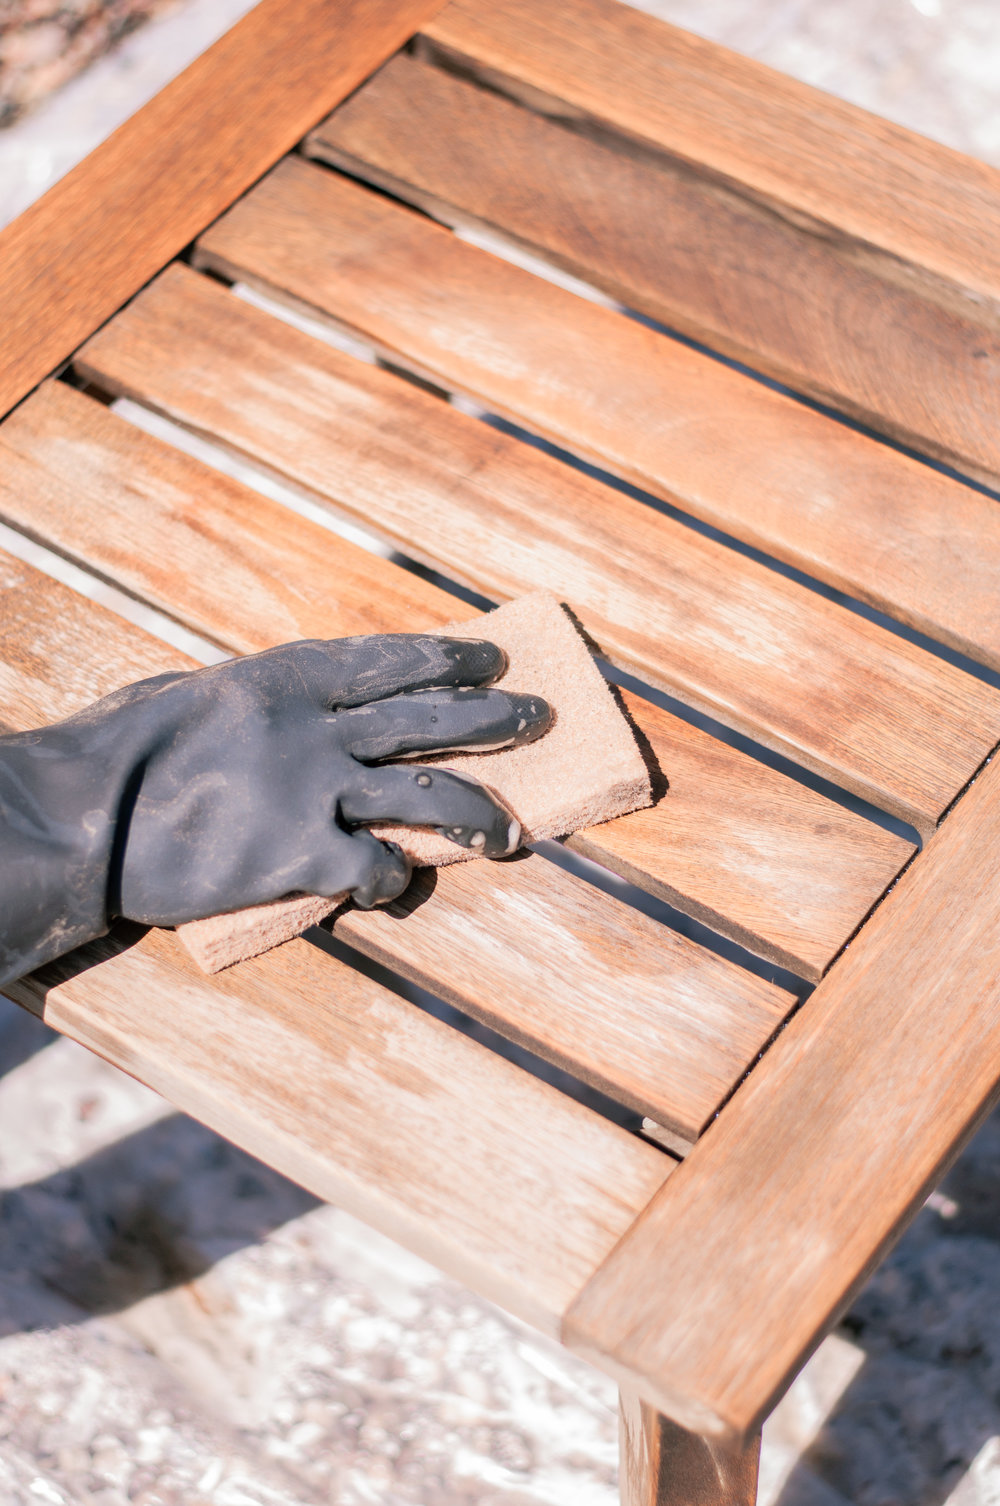 How to Restore Teak Wood Furniture